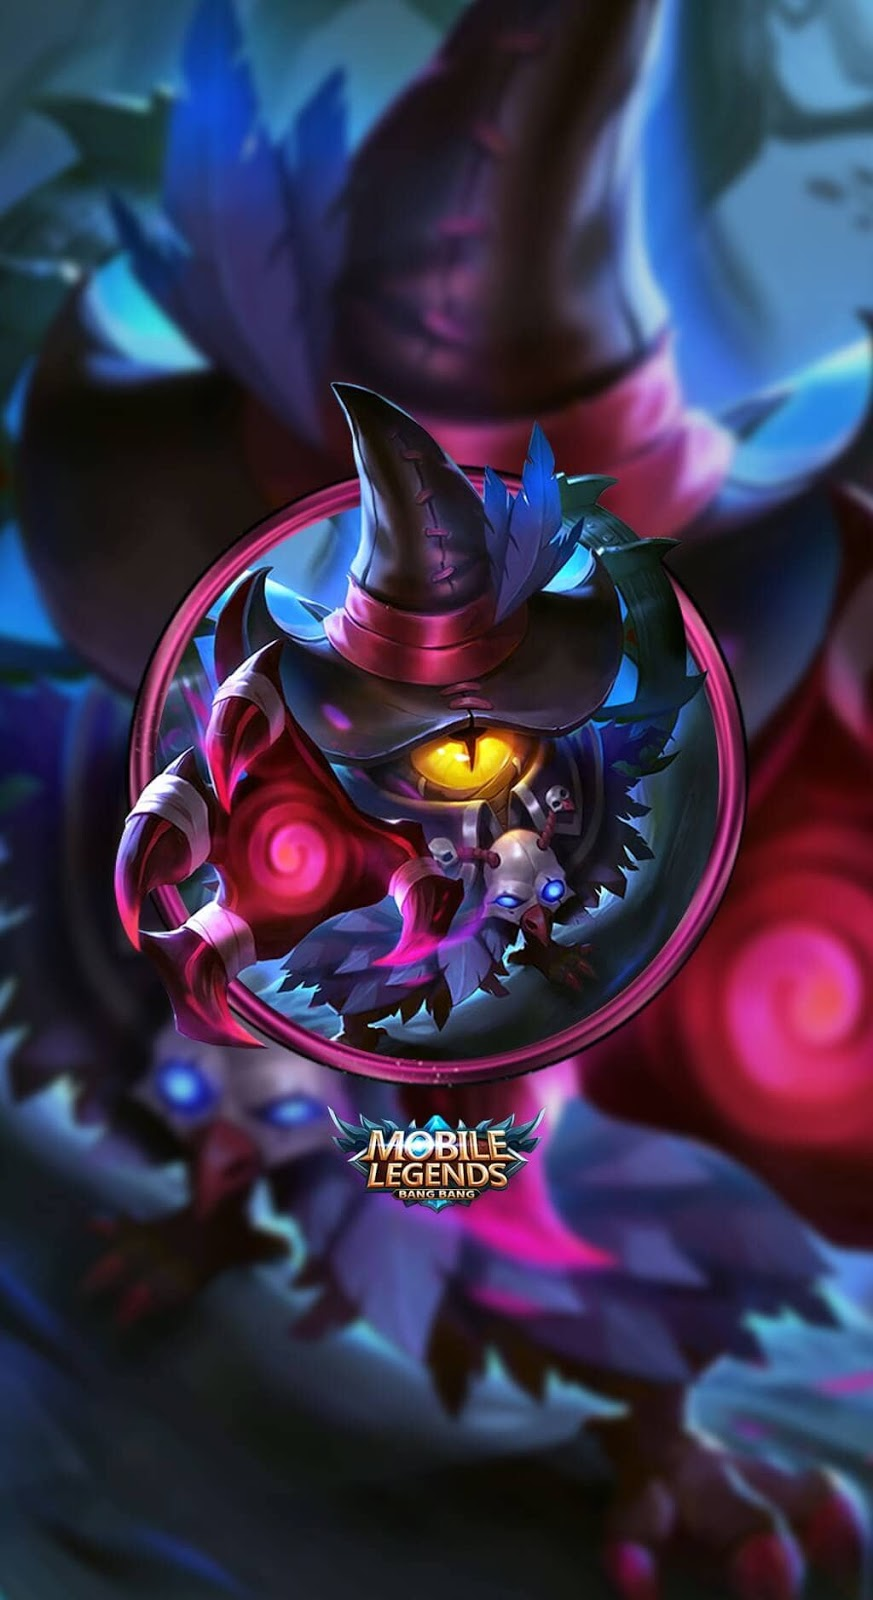 Wallpaper Cyclops Exorcist Skin Mobile Legends HD for Mobile